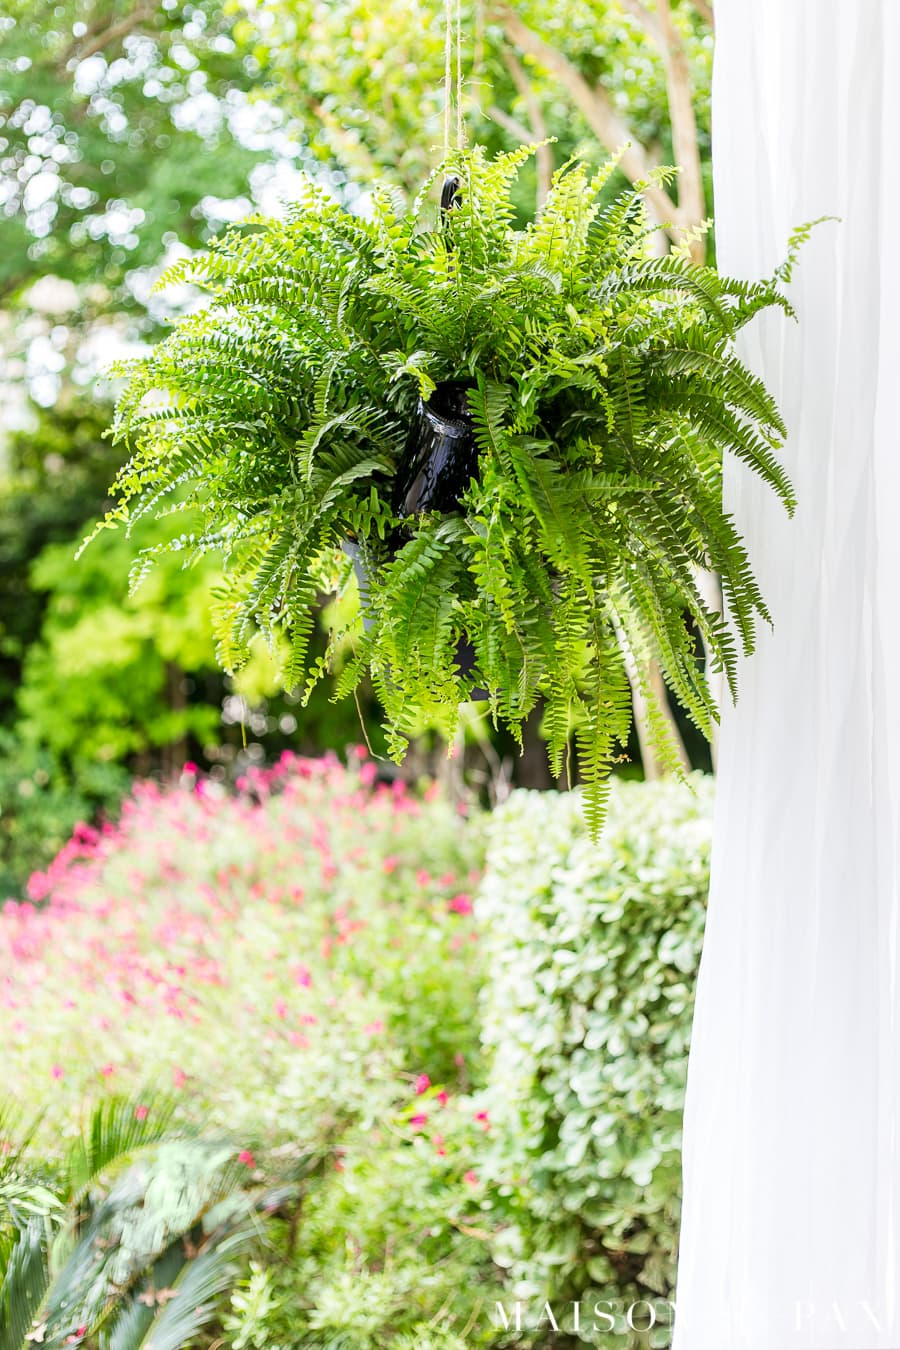 White outdoor curtains and leafy boston ferns make a gorgeous patio! Learn how to make a wine bottle plant waterer to keep your hanging plants hydrated! #winebottlewaterer #winebottle #upcycle #garden #gardening #diygardening #hangingplants #bostonfern #summergarden